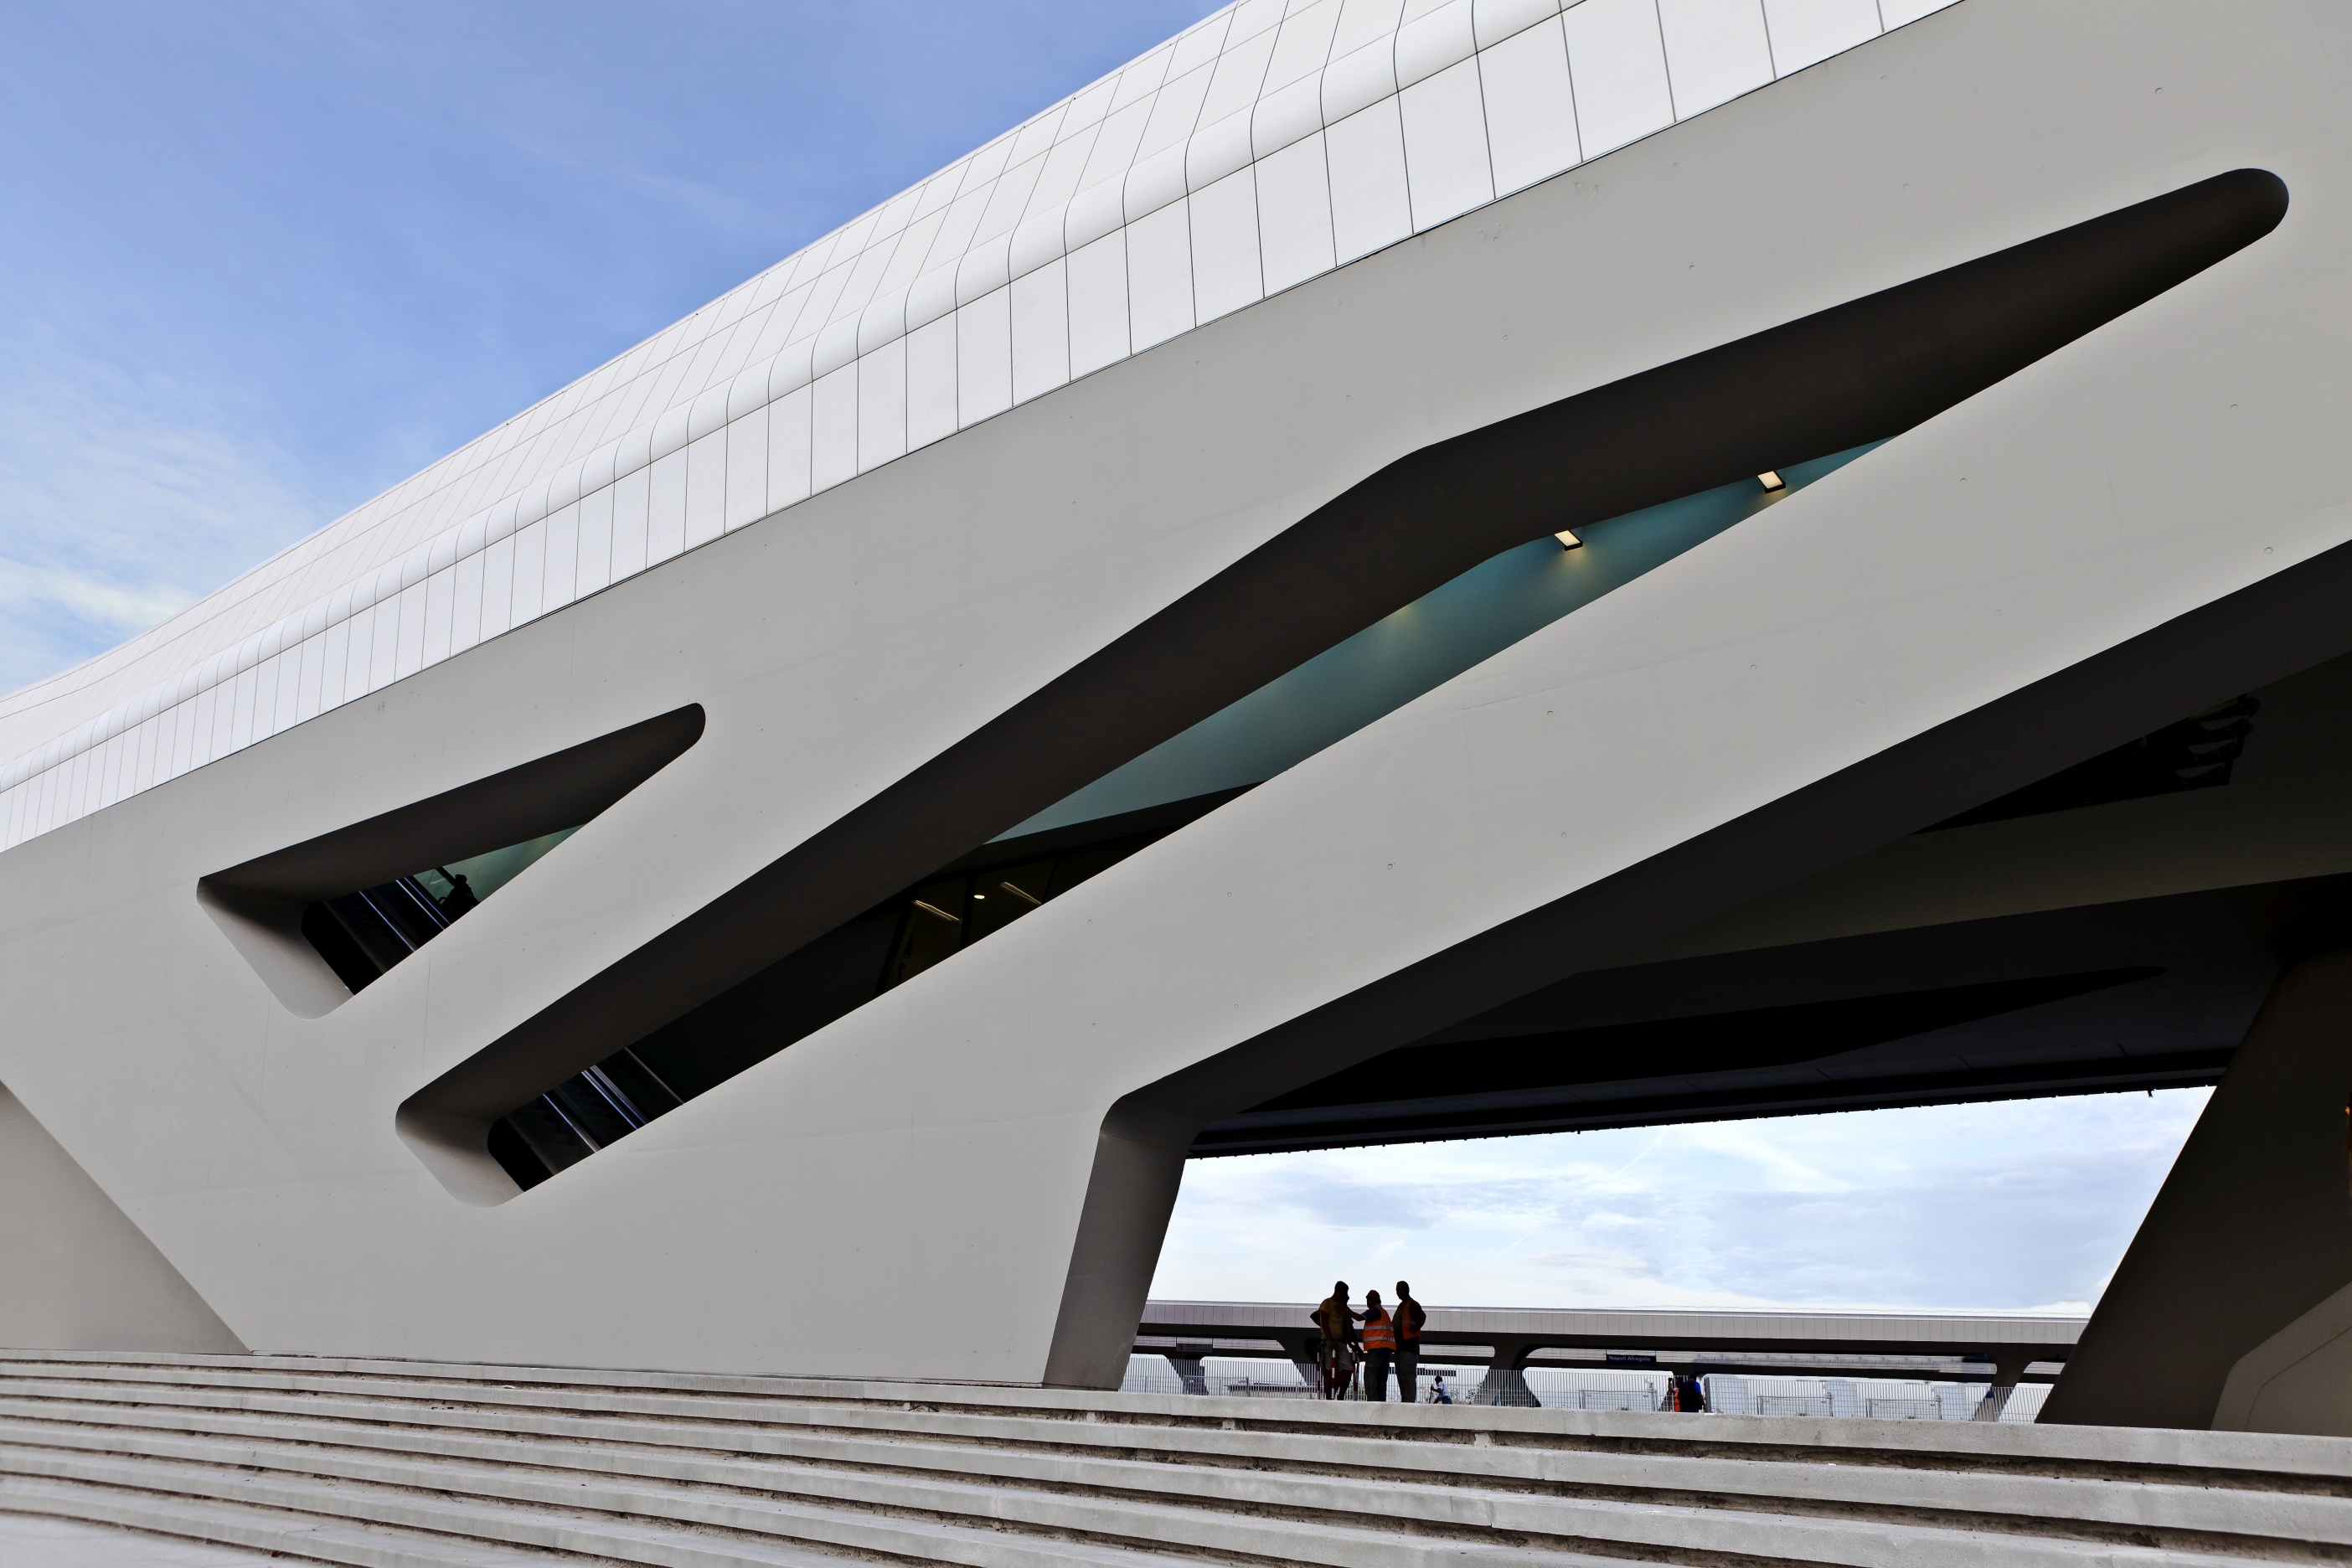 ZHA_Napoli_Afragola_High_Speed_Train_Station_Jacopo_Spilimbergo_06_20180326.jpg